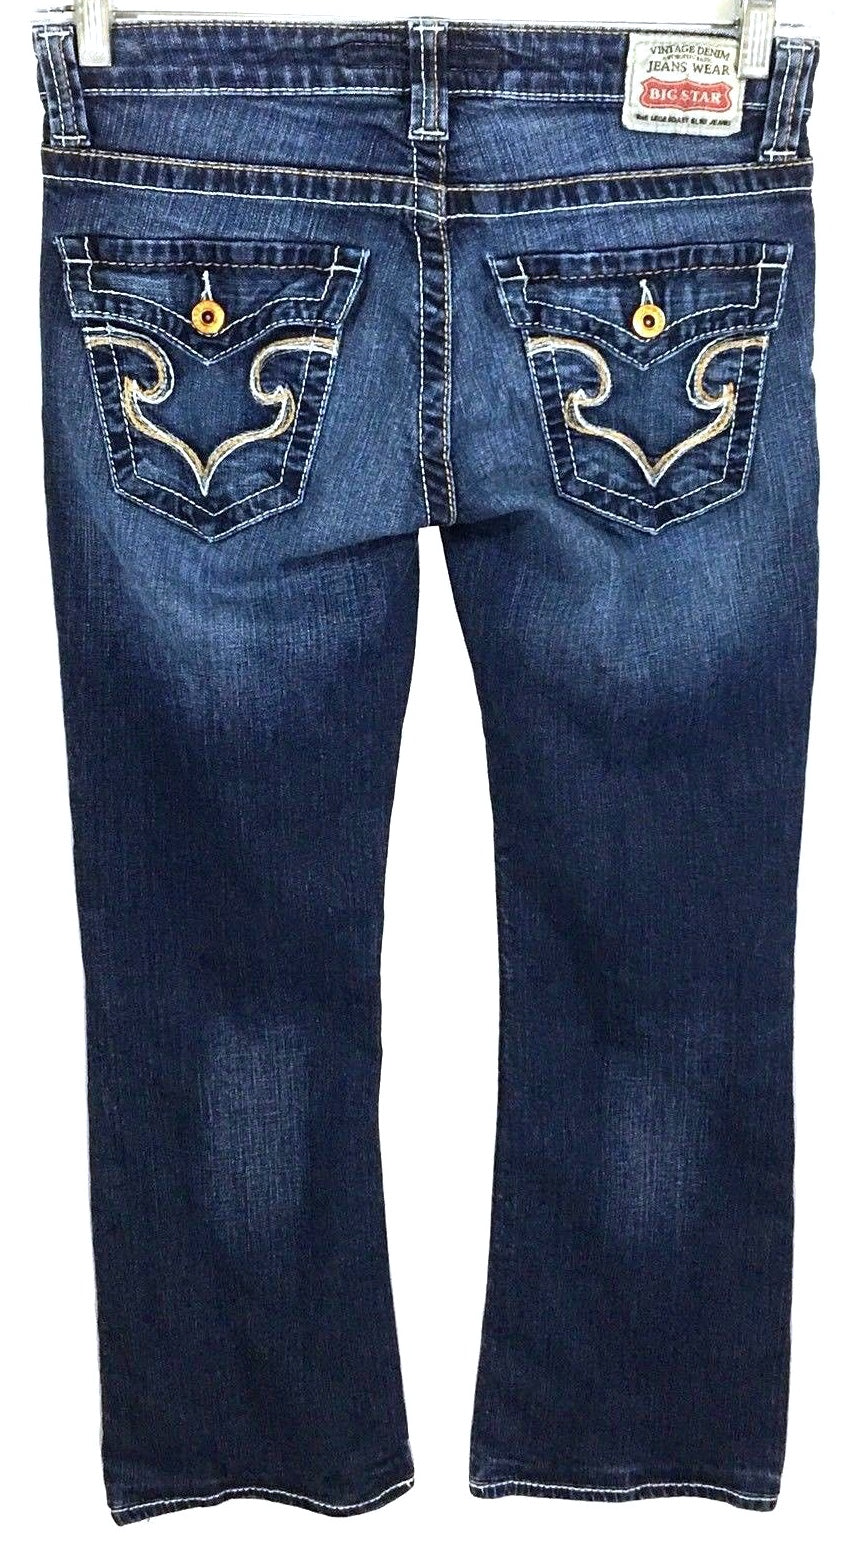 Big Star Remy Low Rise Boot Jeans Dark Wash Back Flaps Pockets Womens 27 R 27R - Preowned - FunkyCrap Boutique